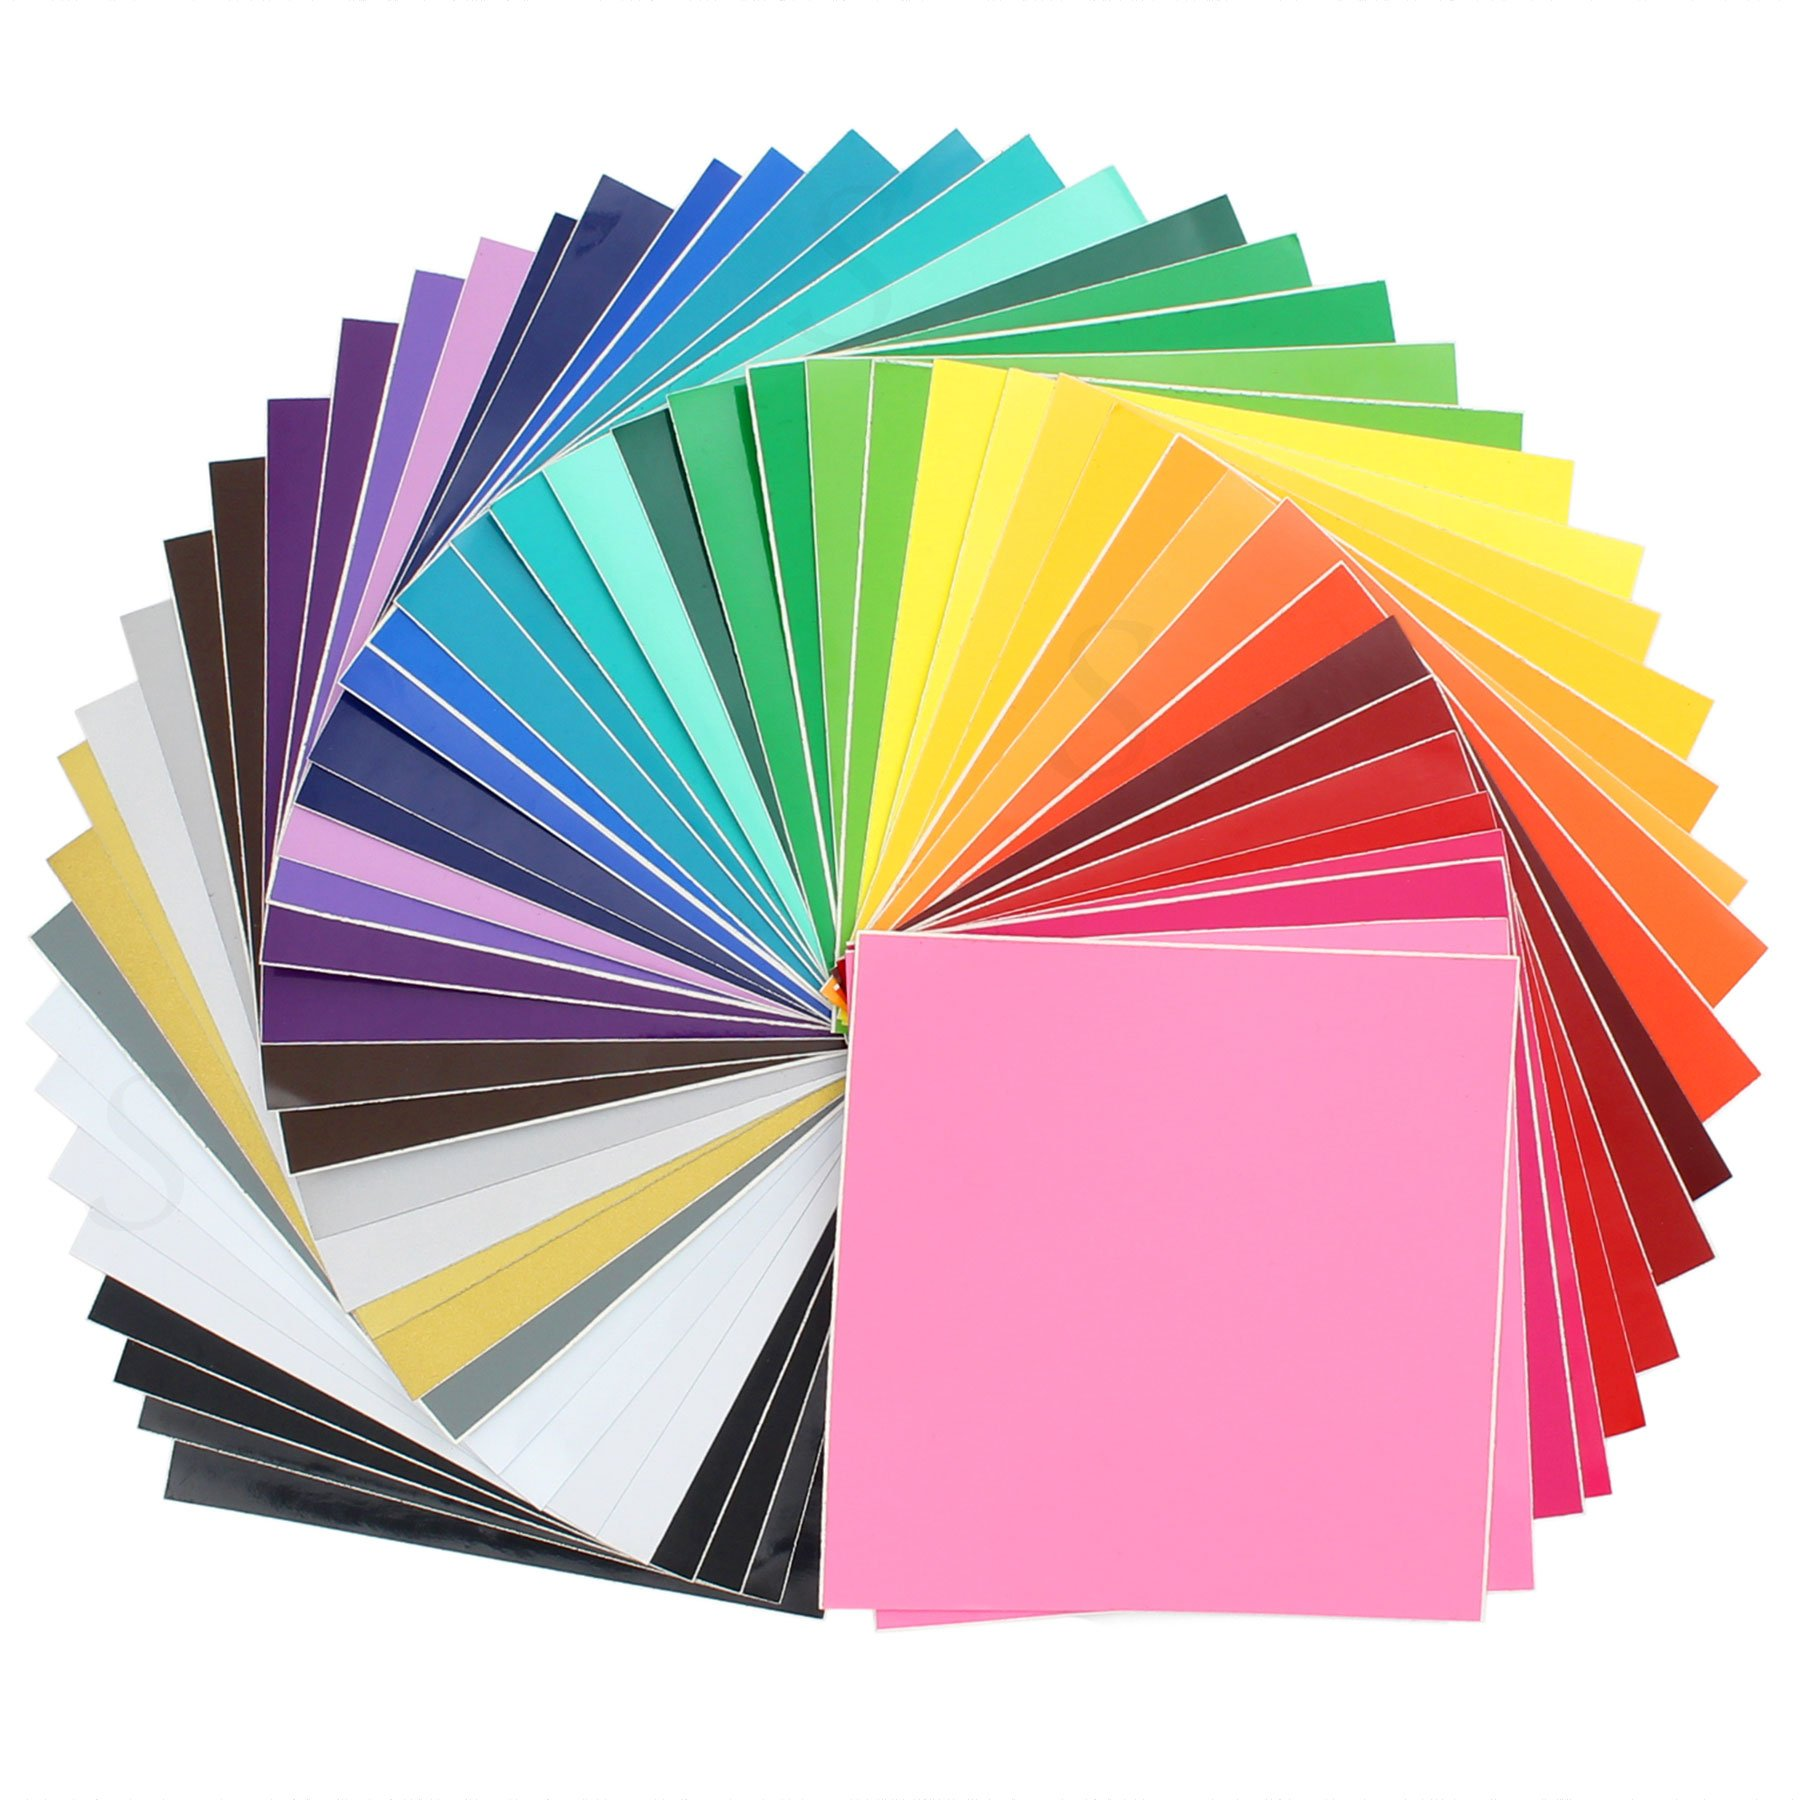 Oracal Assorted 631 and 651 Vinyl - 48 Pack of Top Colors - 12'' x 12'' Sheets